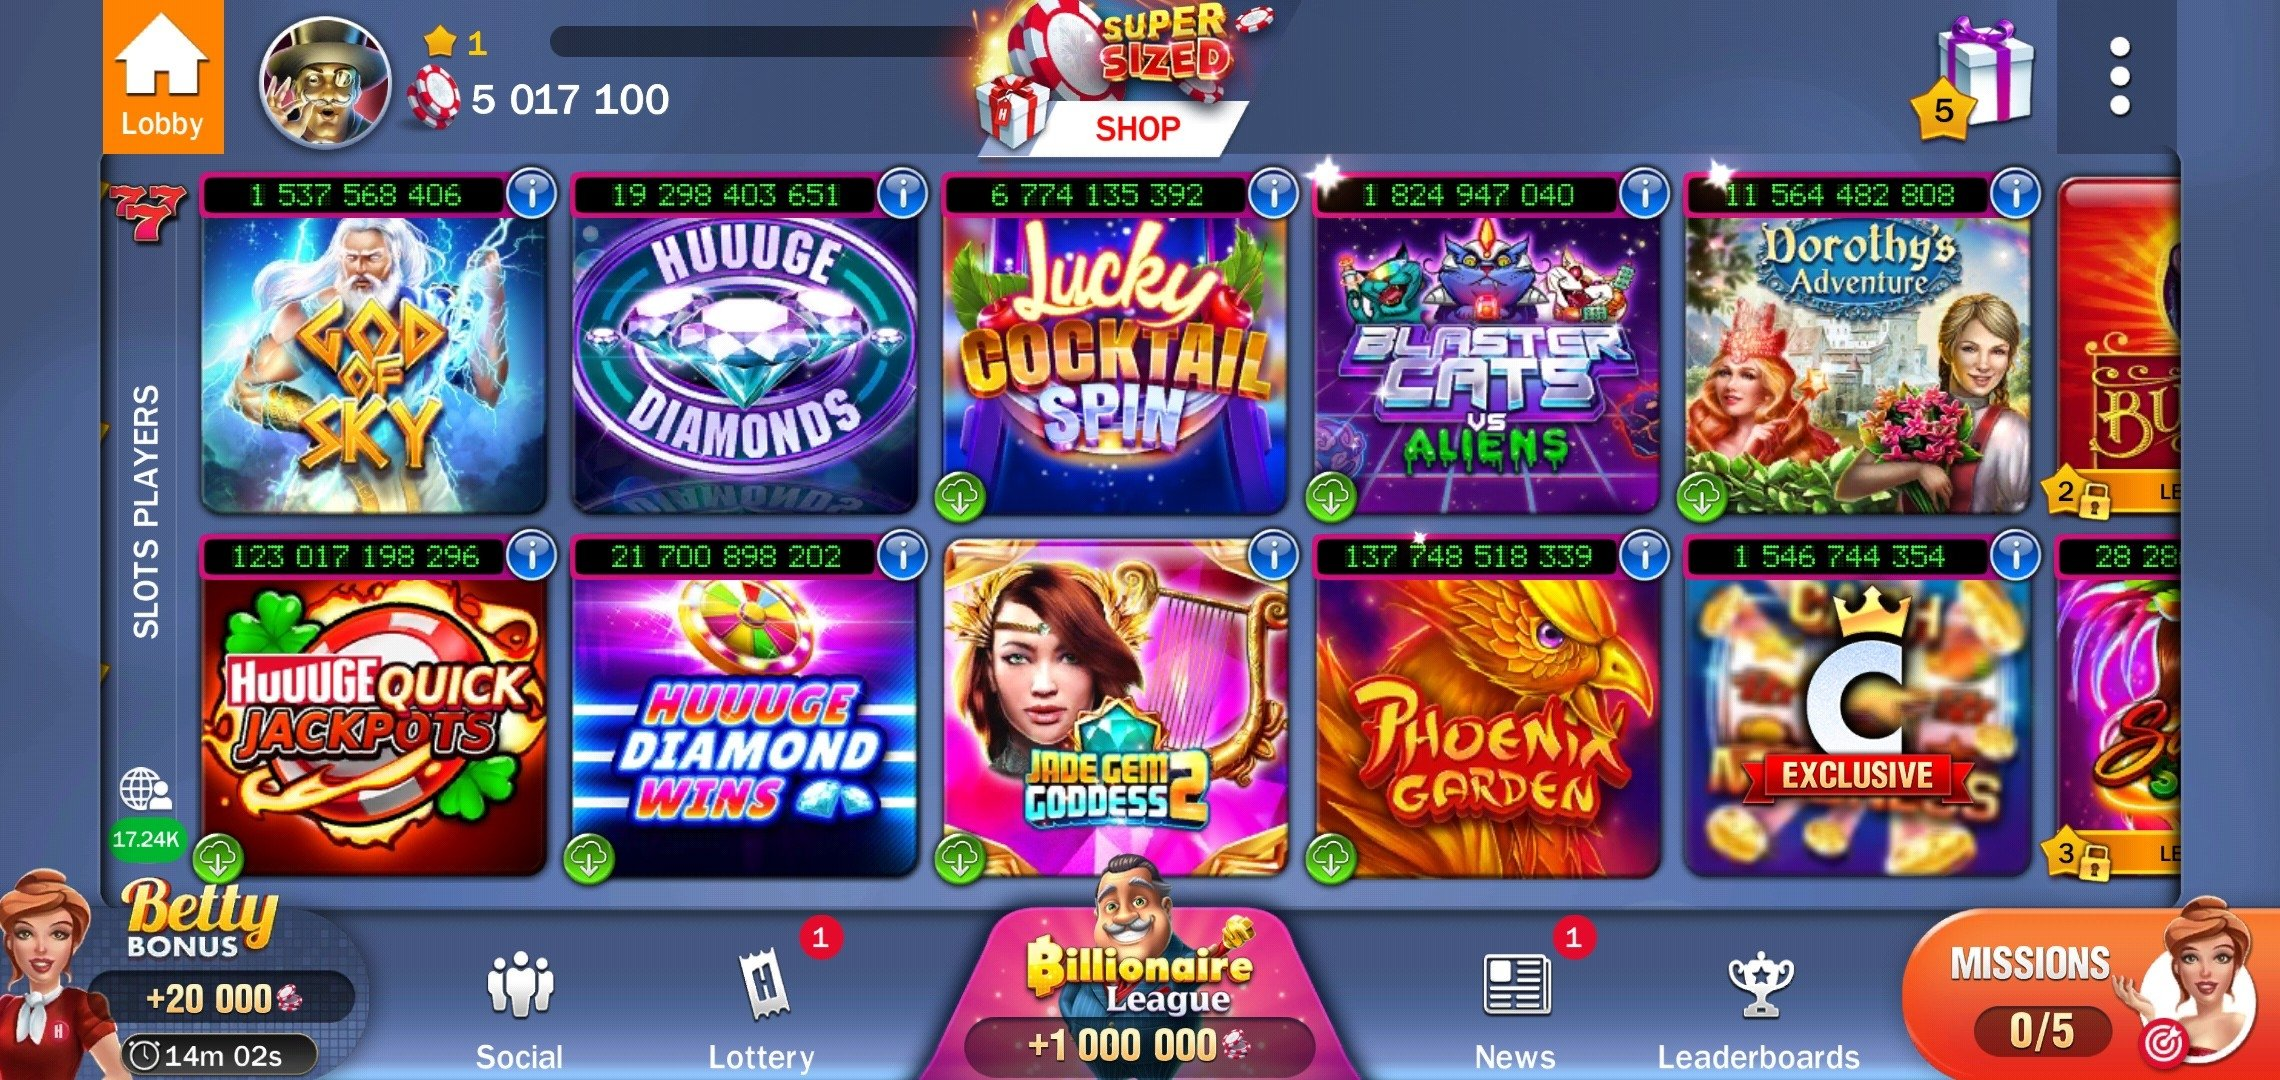 Huuuge Casino Slots 5 0 1701 Download For Android Apk Free